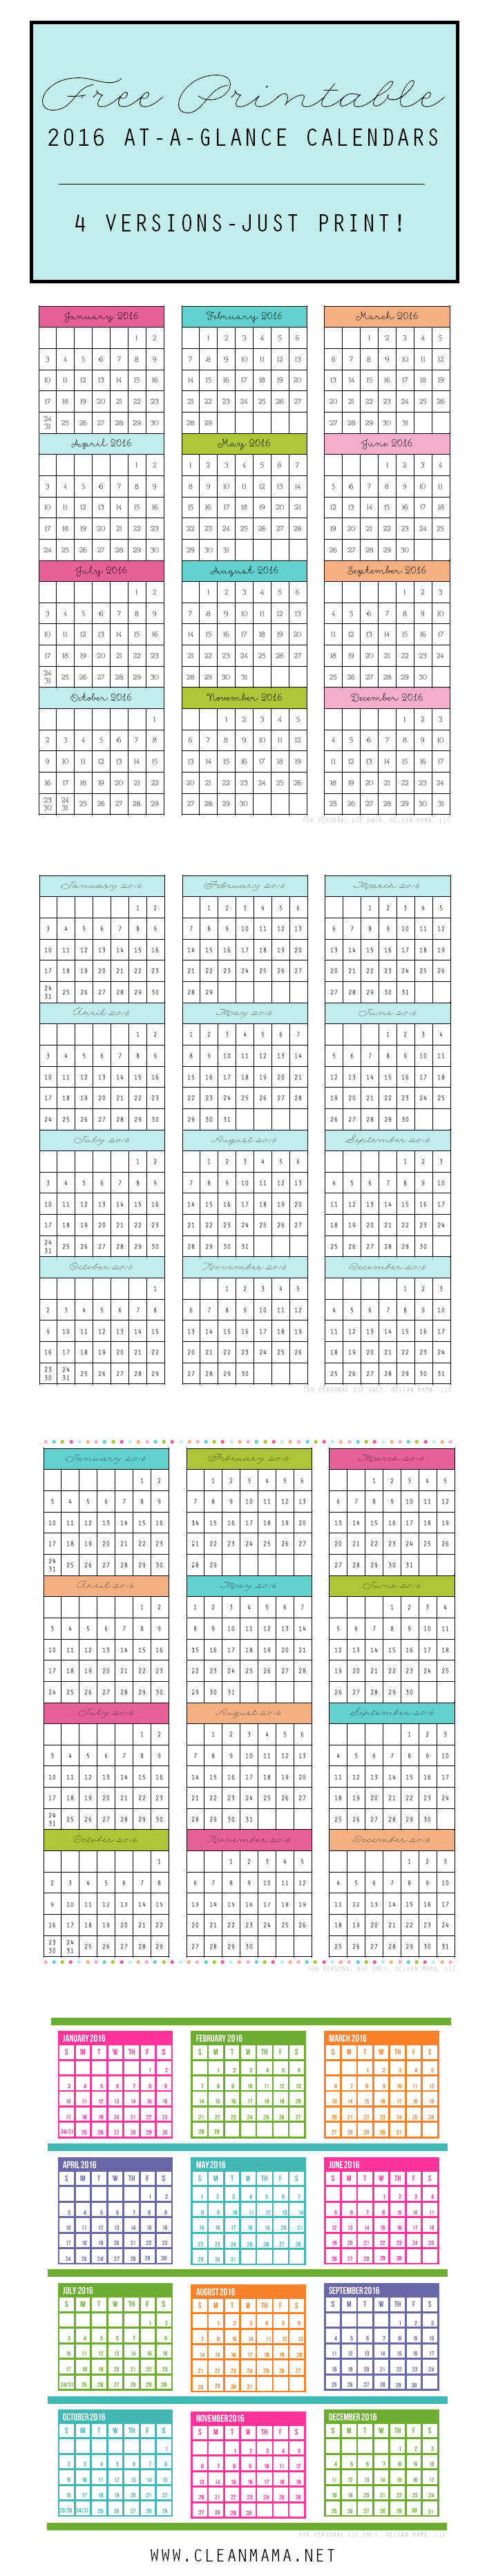 free 2016 at a glance calendars time management to do lists